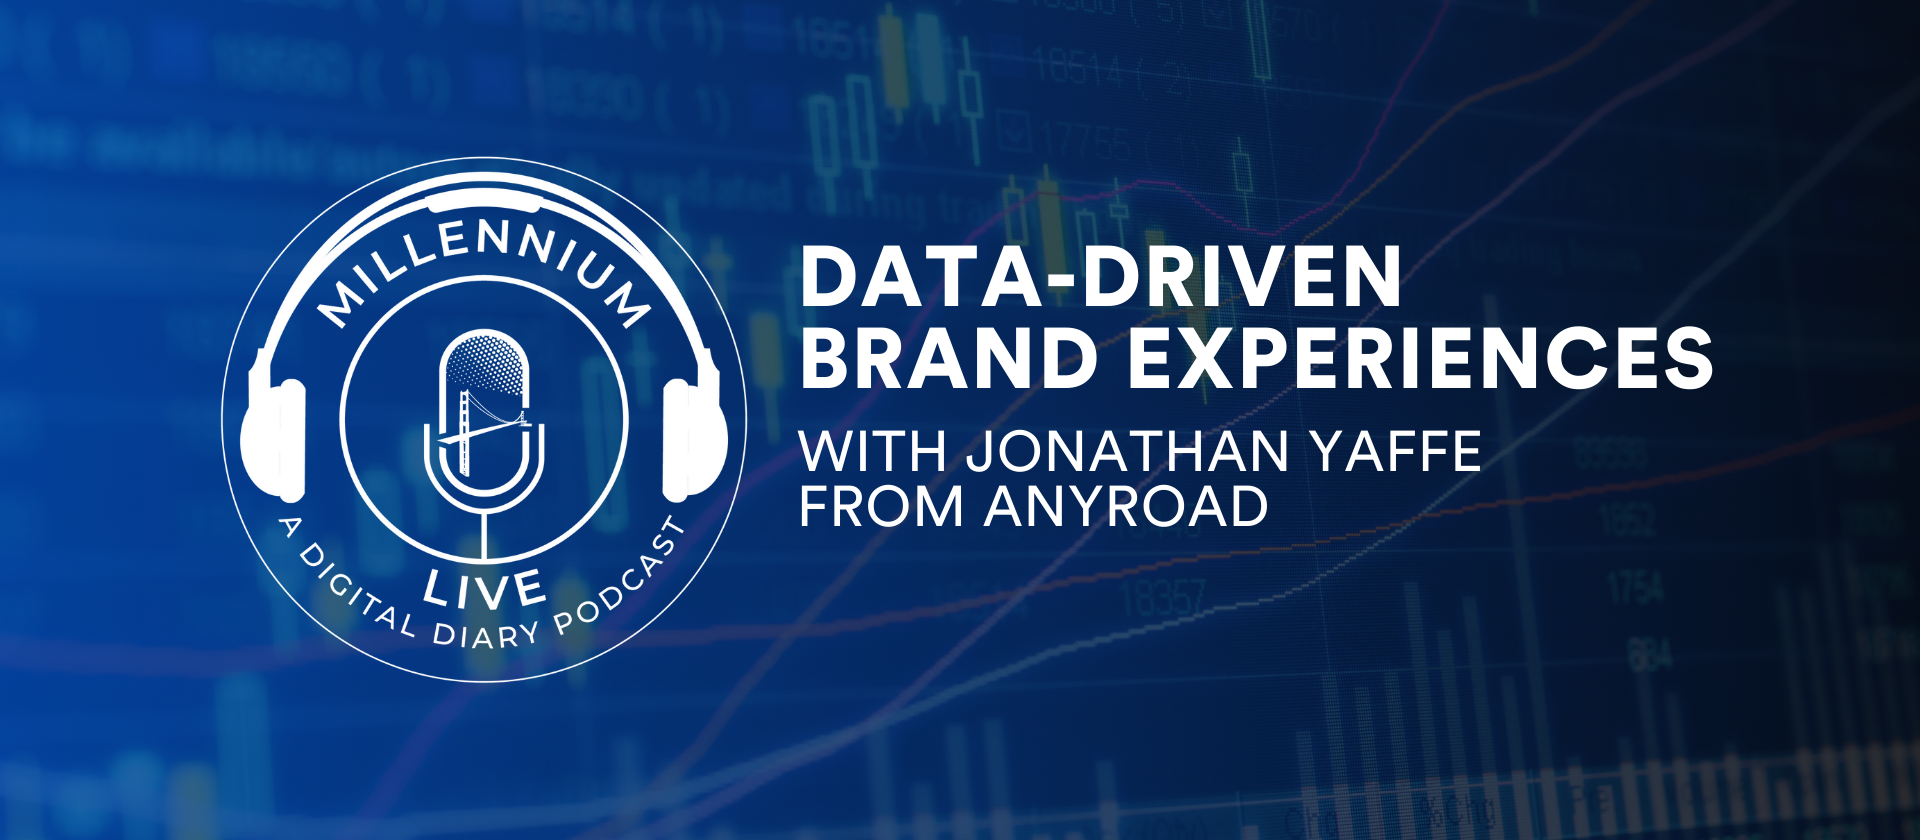 Experiential-Marketing-AnyRoad